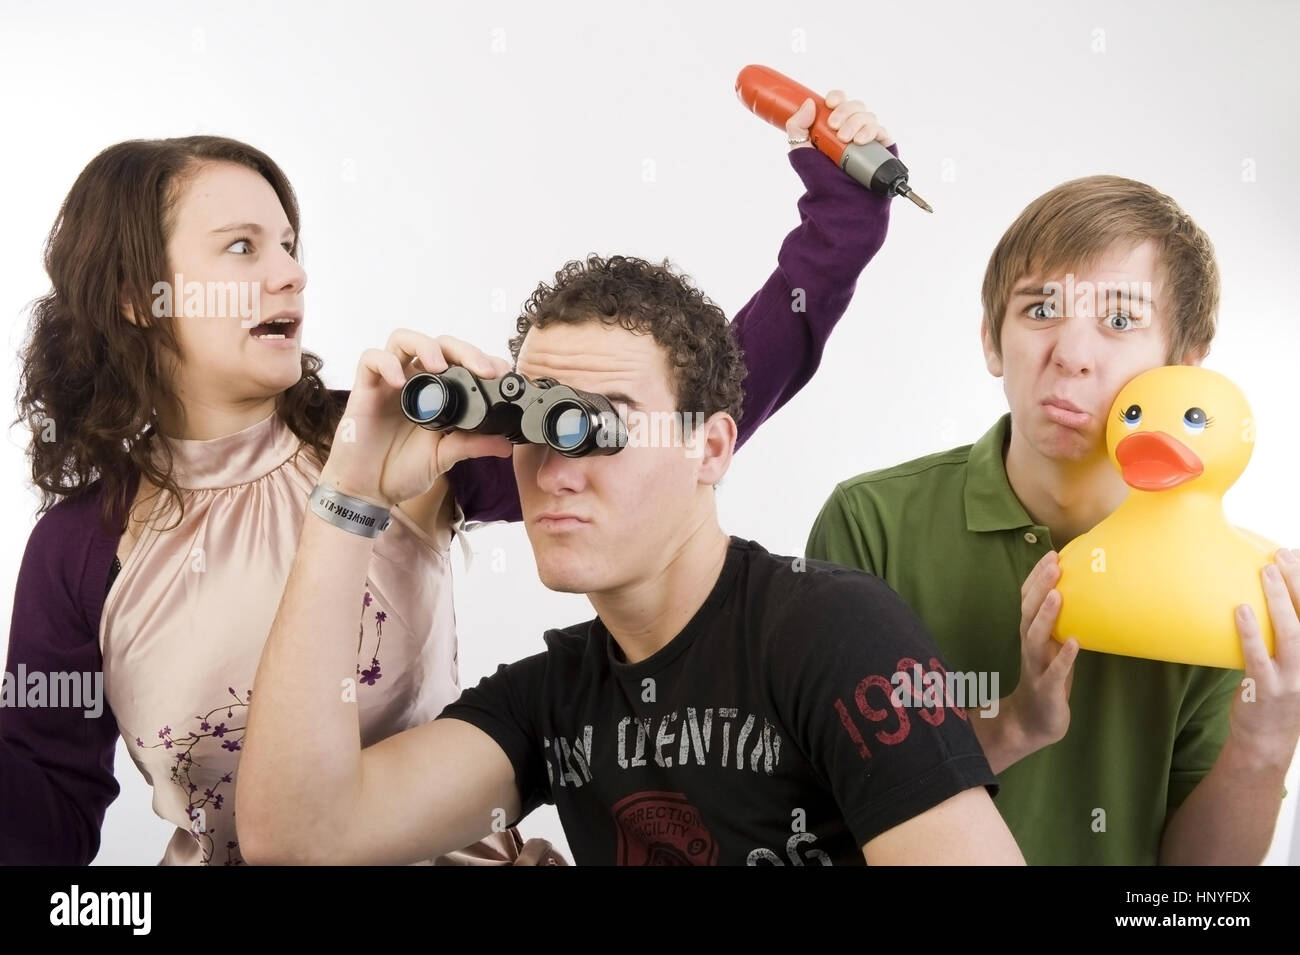 Model release , Drei Jugendliche in lustiger Pose - three funny teenager - Stock Image